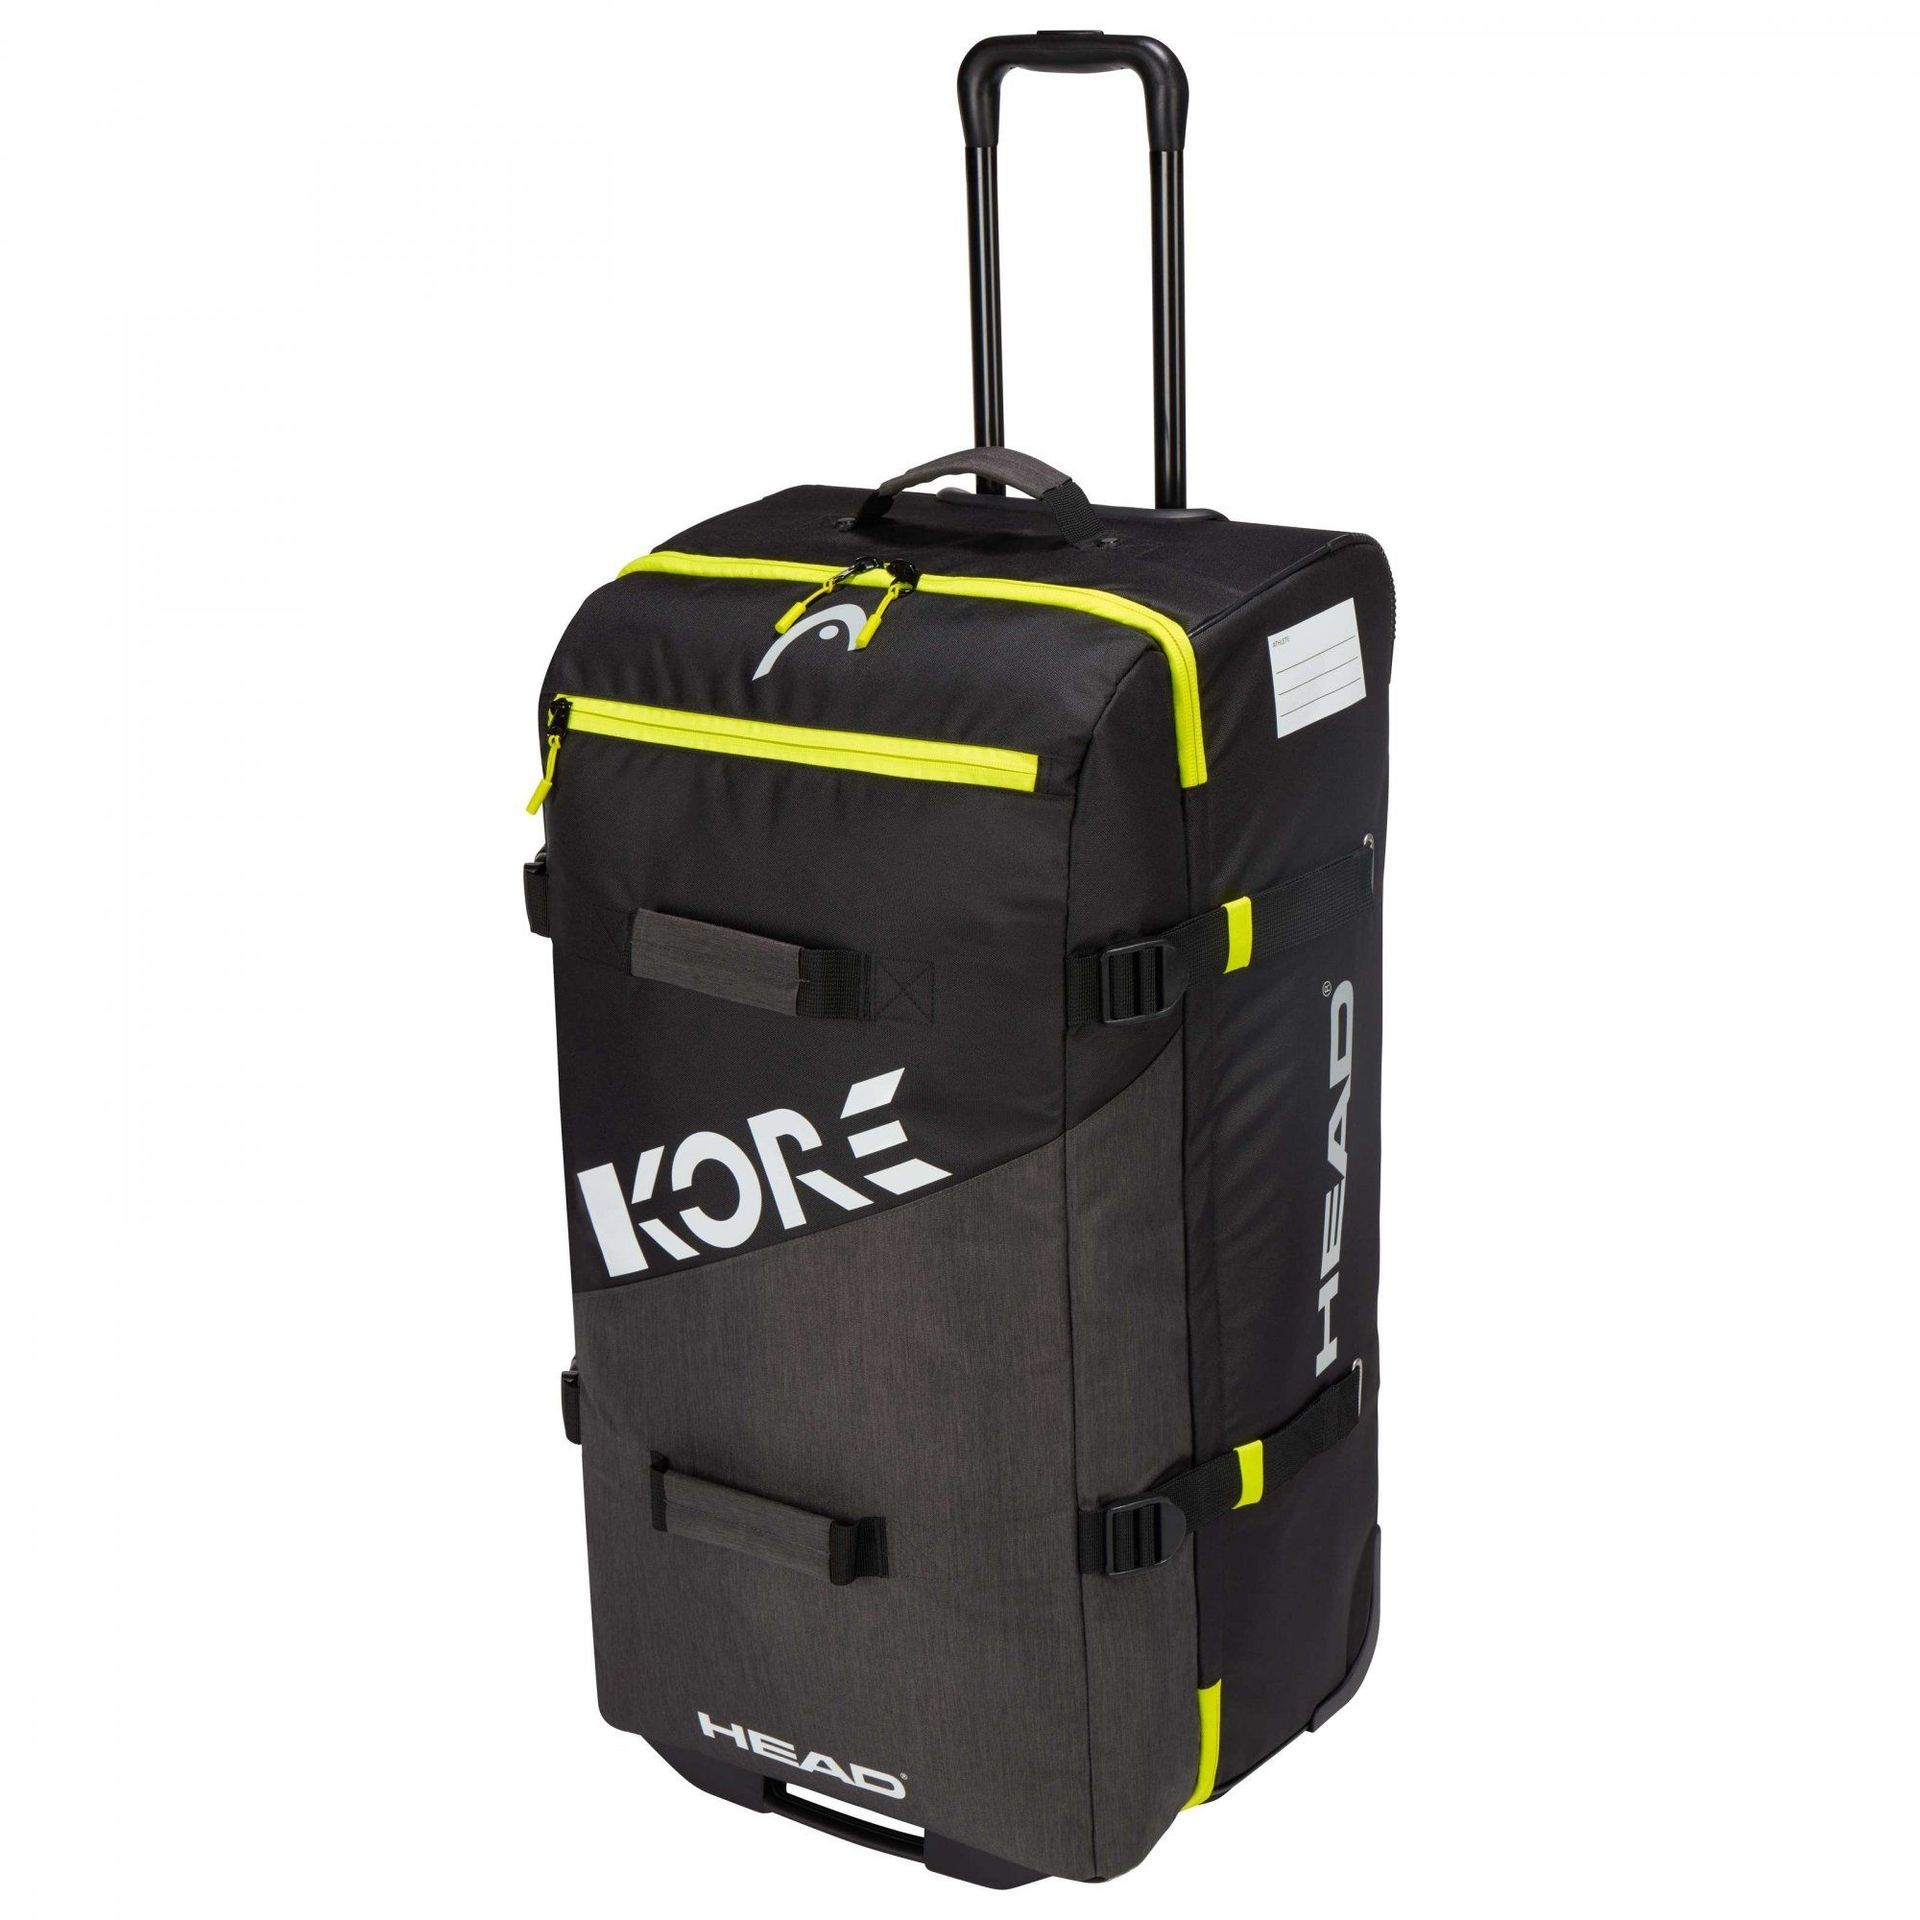 TORBA PODRÓŻNA HEAD REBELS TRAVELBAG 383119